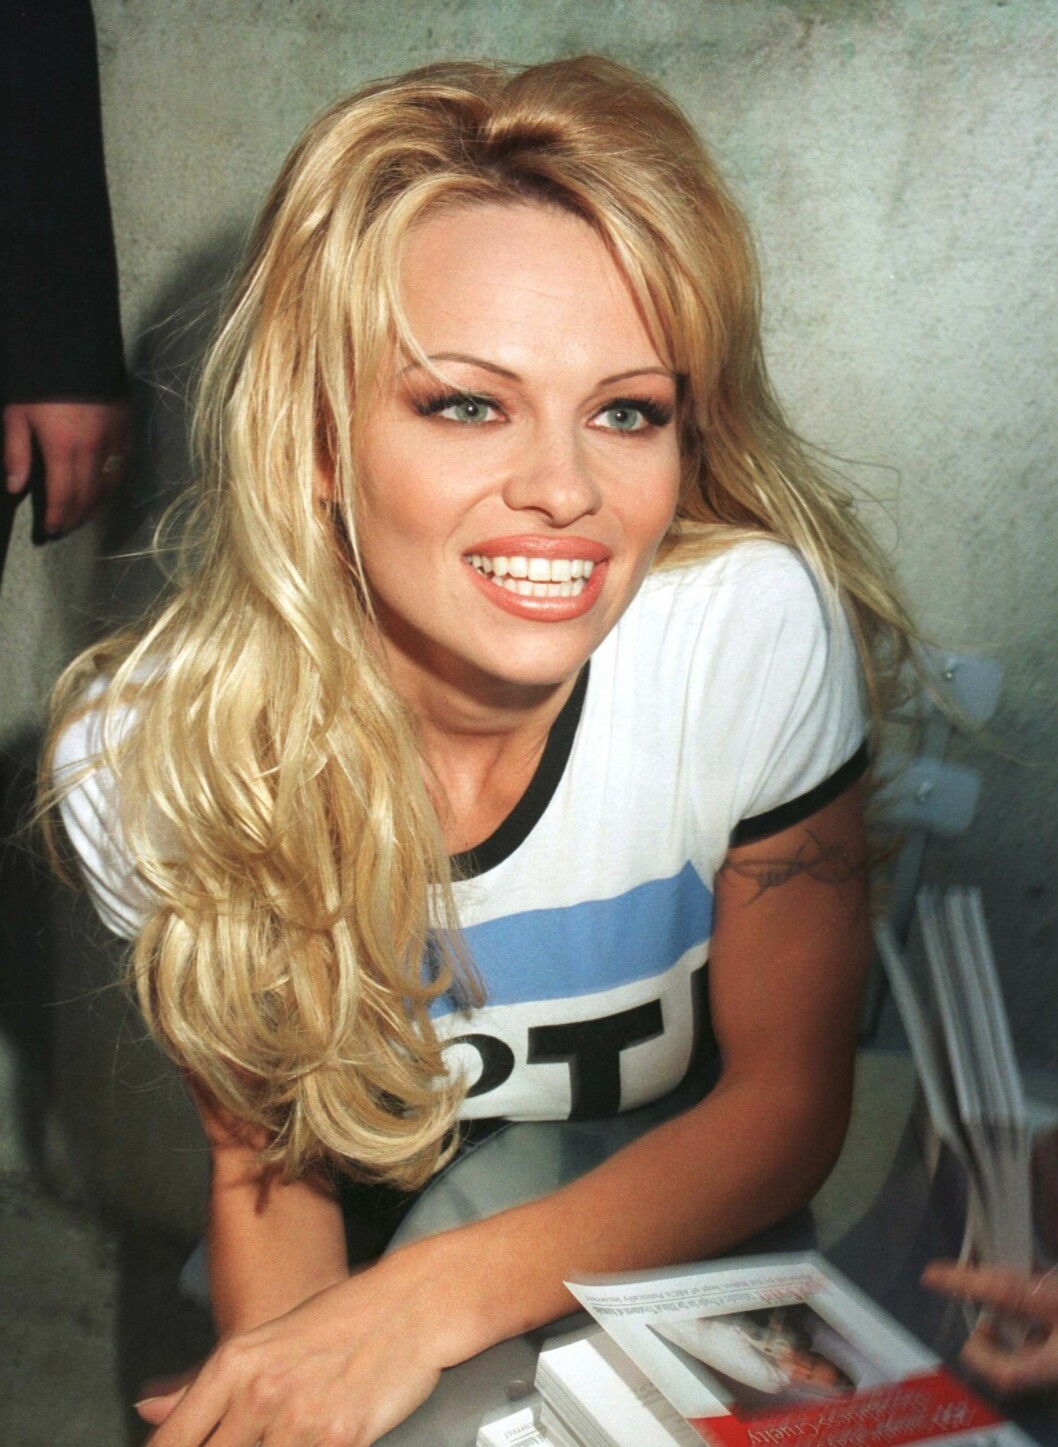 Pamela Anderson var superbaben i Baywatch. Og de blonde surfelokkene hennes var et yndet objekt for kopiering.  Foto: All Over Press